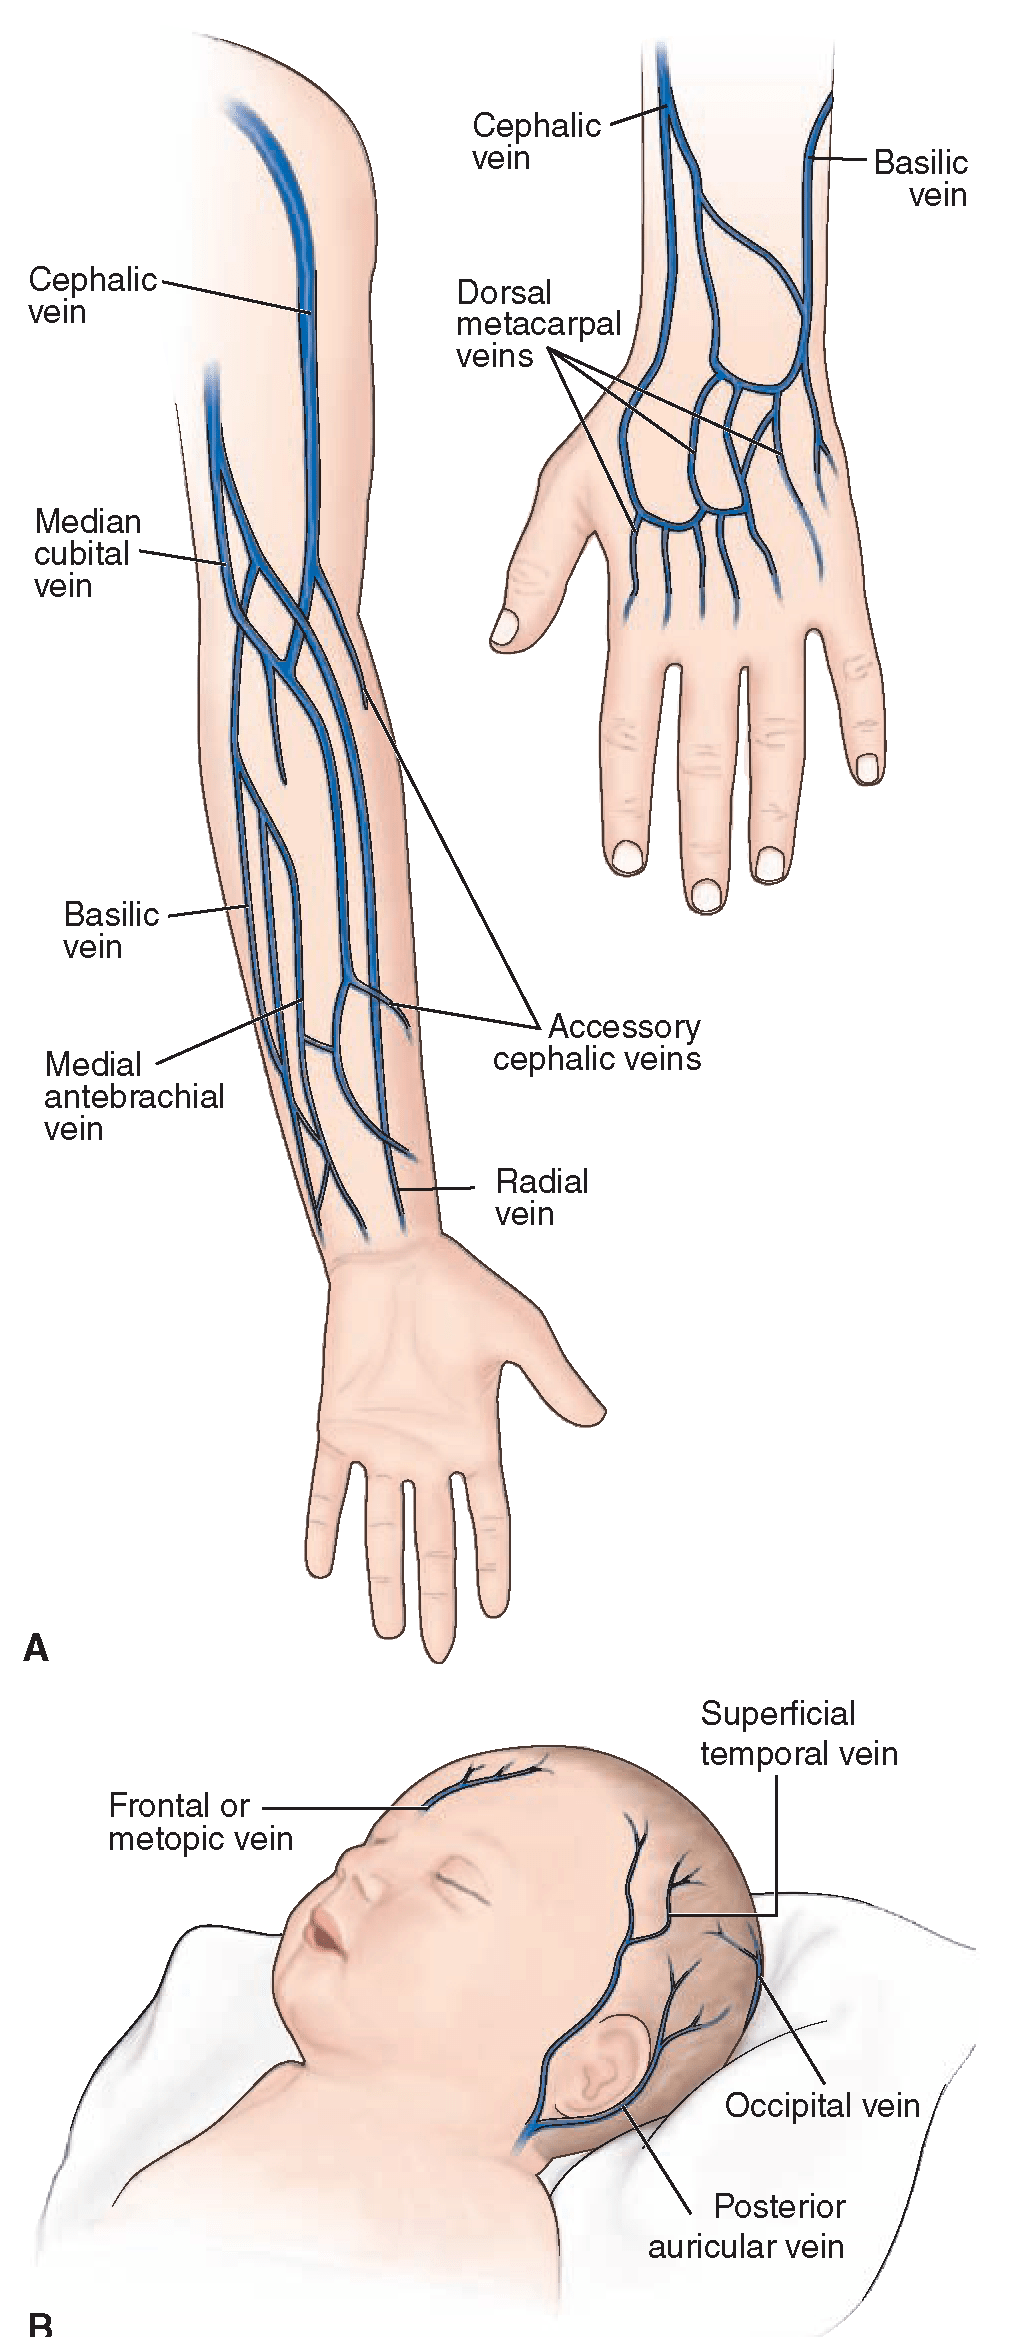 hight resolution of commonly used infusion sites a ventral and dorsal aspects of arm and hand